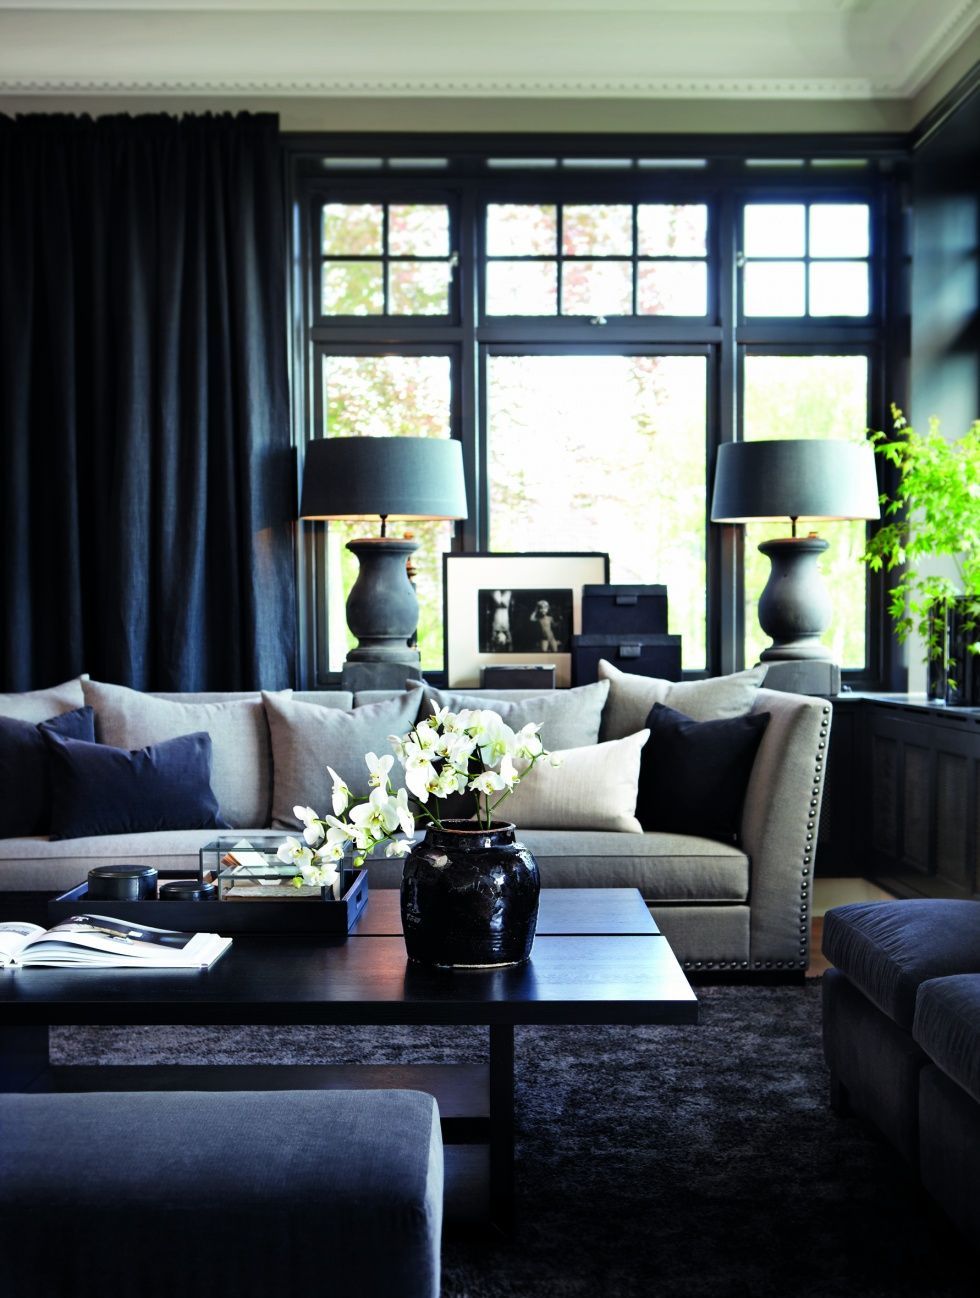 Iu0027m Gonna Need A Sofa Table With Lamps. Living Room Decorating Ideas On A  Budget   Love This Ideas For The Living Room Grey And Silver Theme